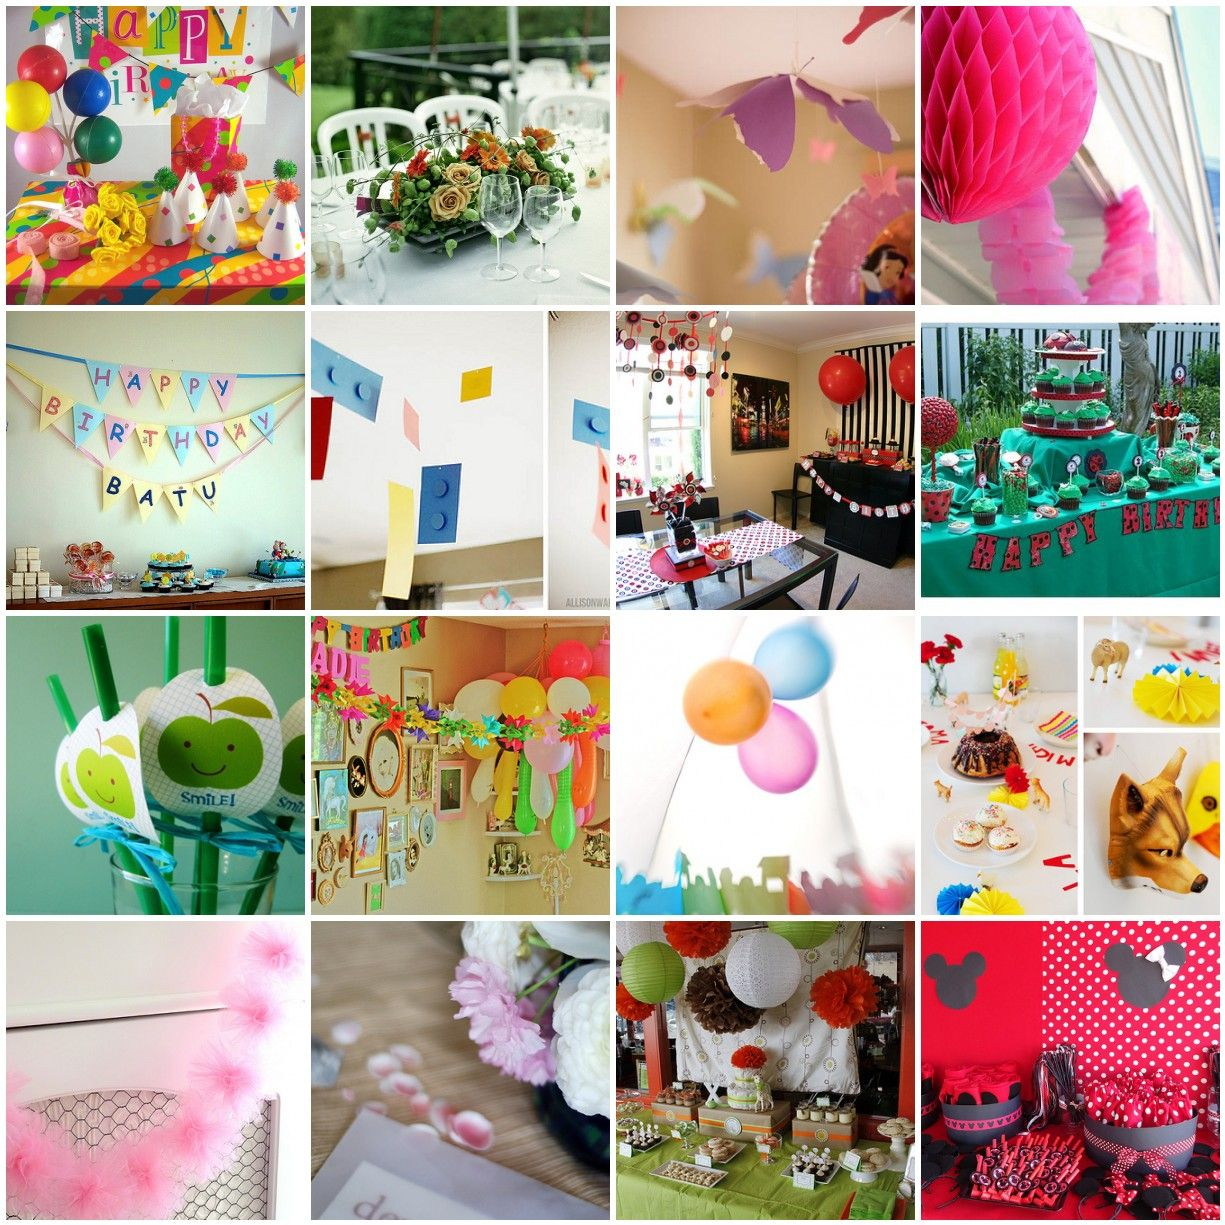 Homemade party decorations decoration ideas party decorations online ideas for party on - Online home decorating ideas ...